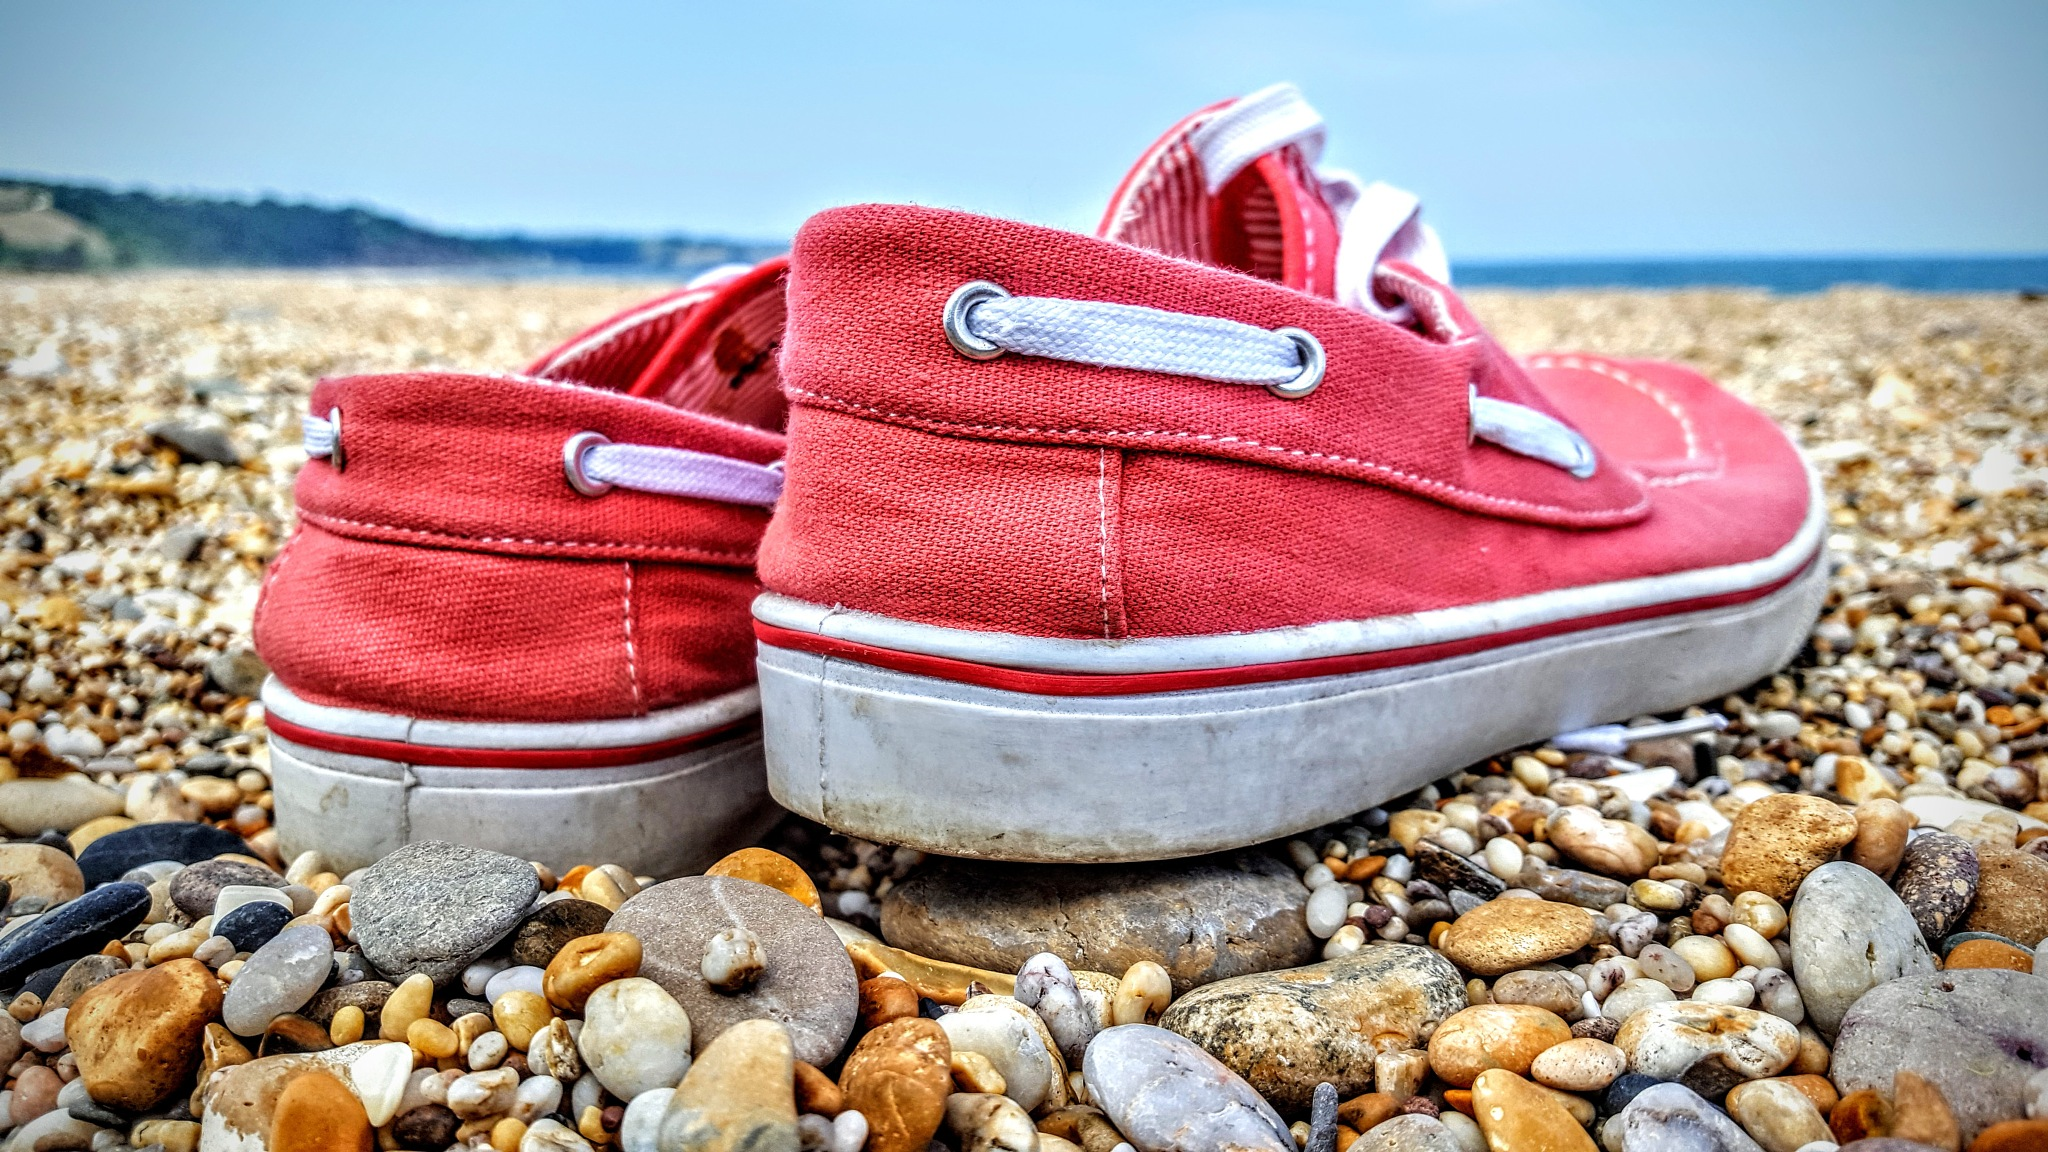 Beach Shoes by Yvonne Lewis